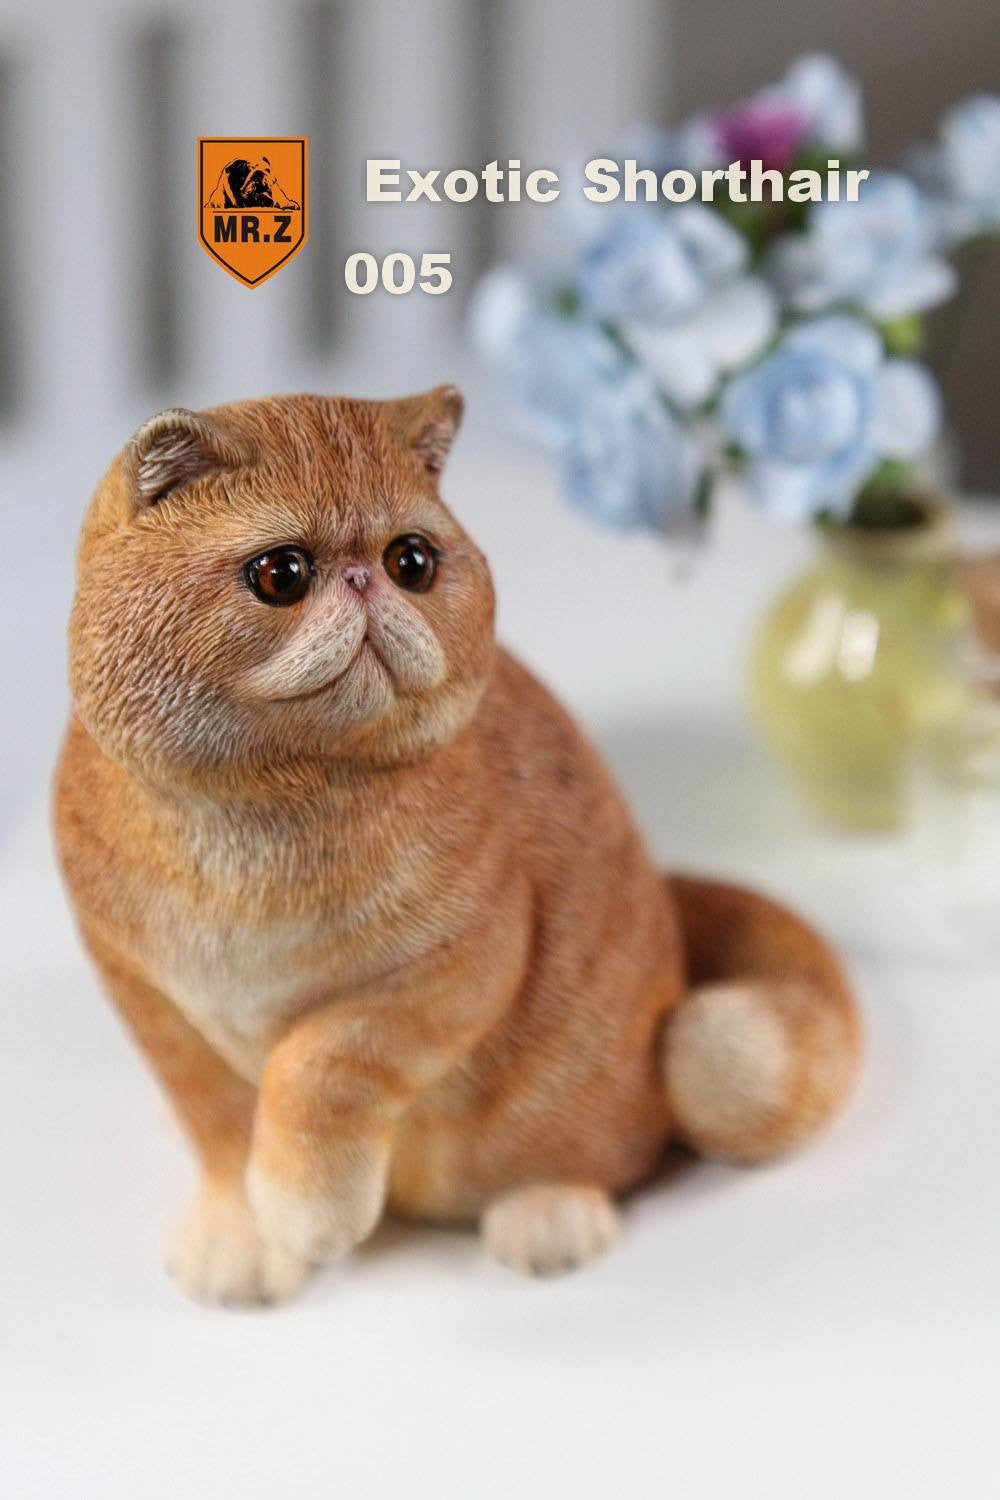 MR.Z - Real Animal Series No.8 - 1/6th Scale Exotic Shorthair Cat (Garfield) 001-005 - Marvelous Toys - 34